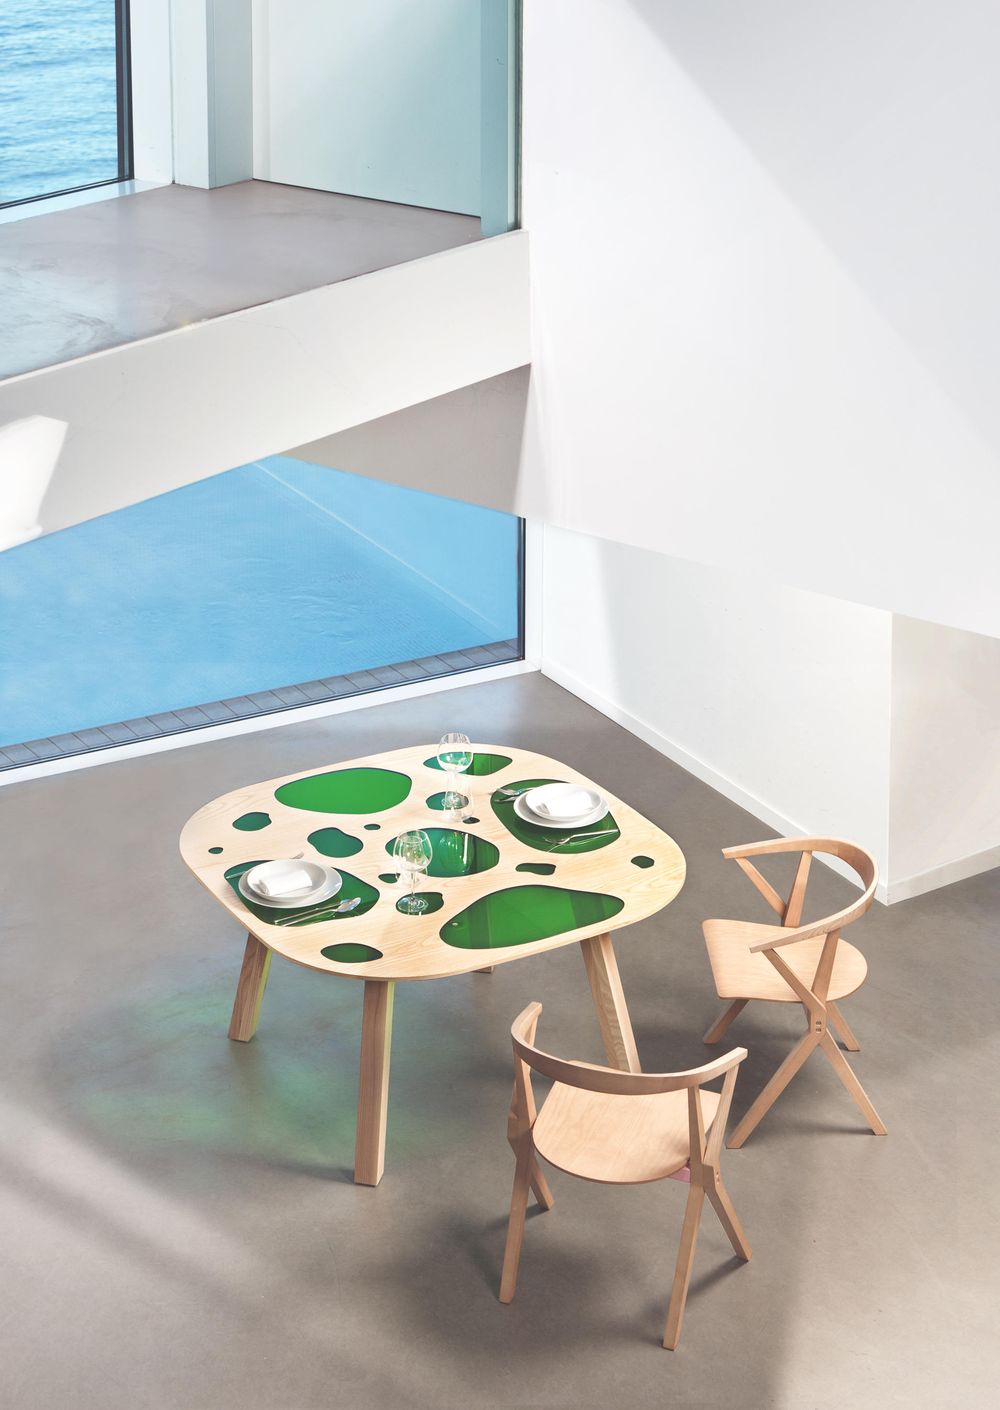 Aquario Table, Campana Brothers, 2016.